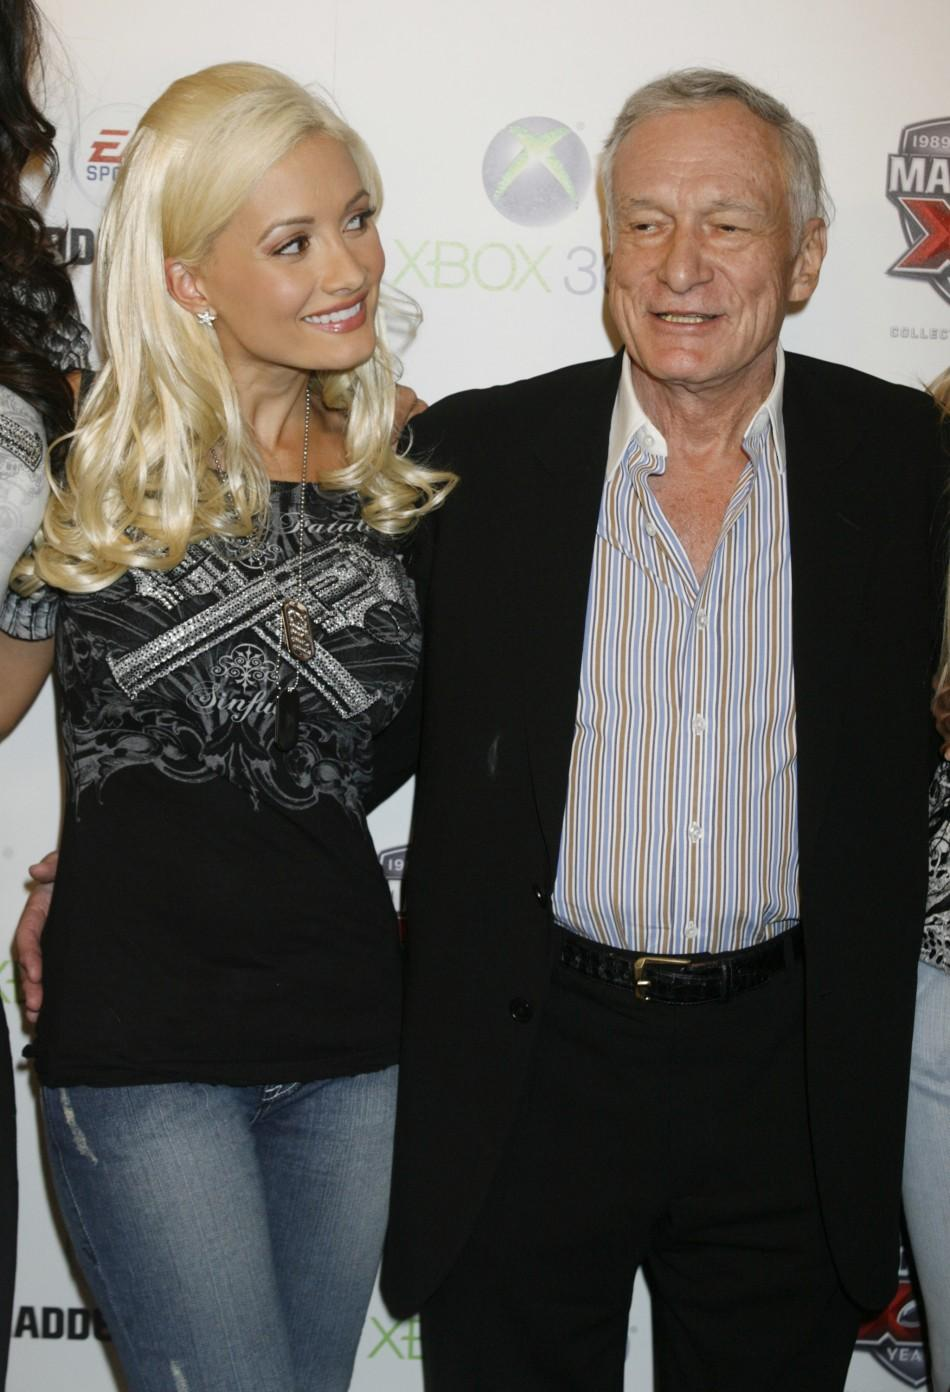 'Playboy' Hugh Hefner and his many 'playmate' girlfriends